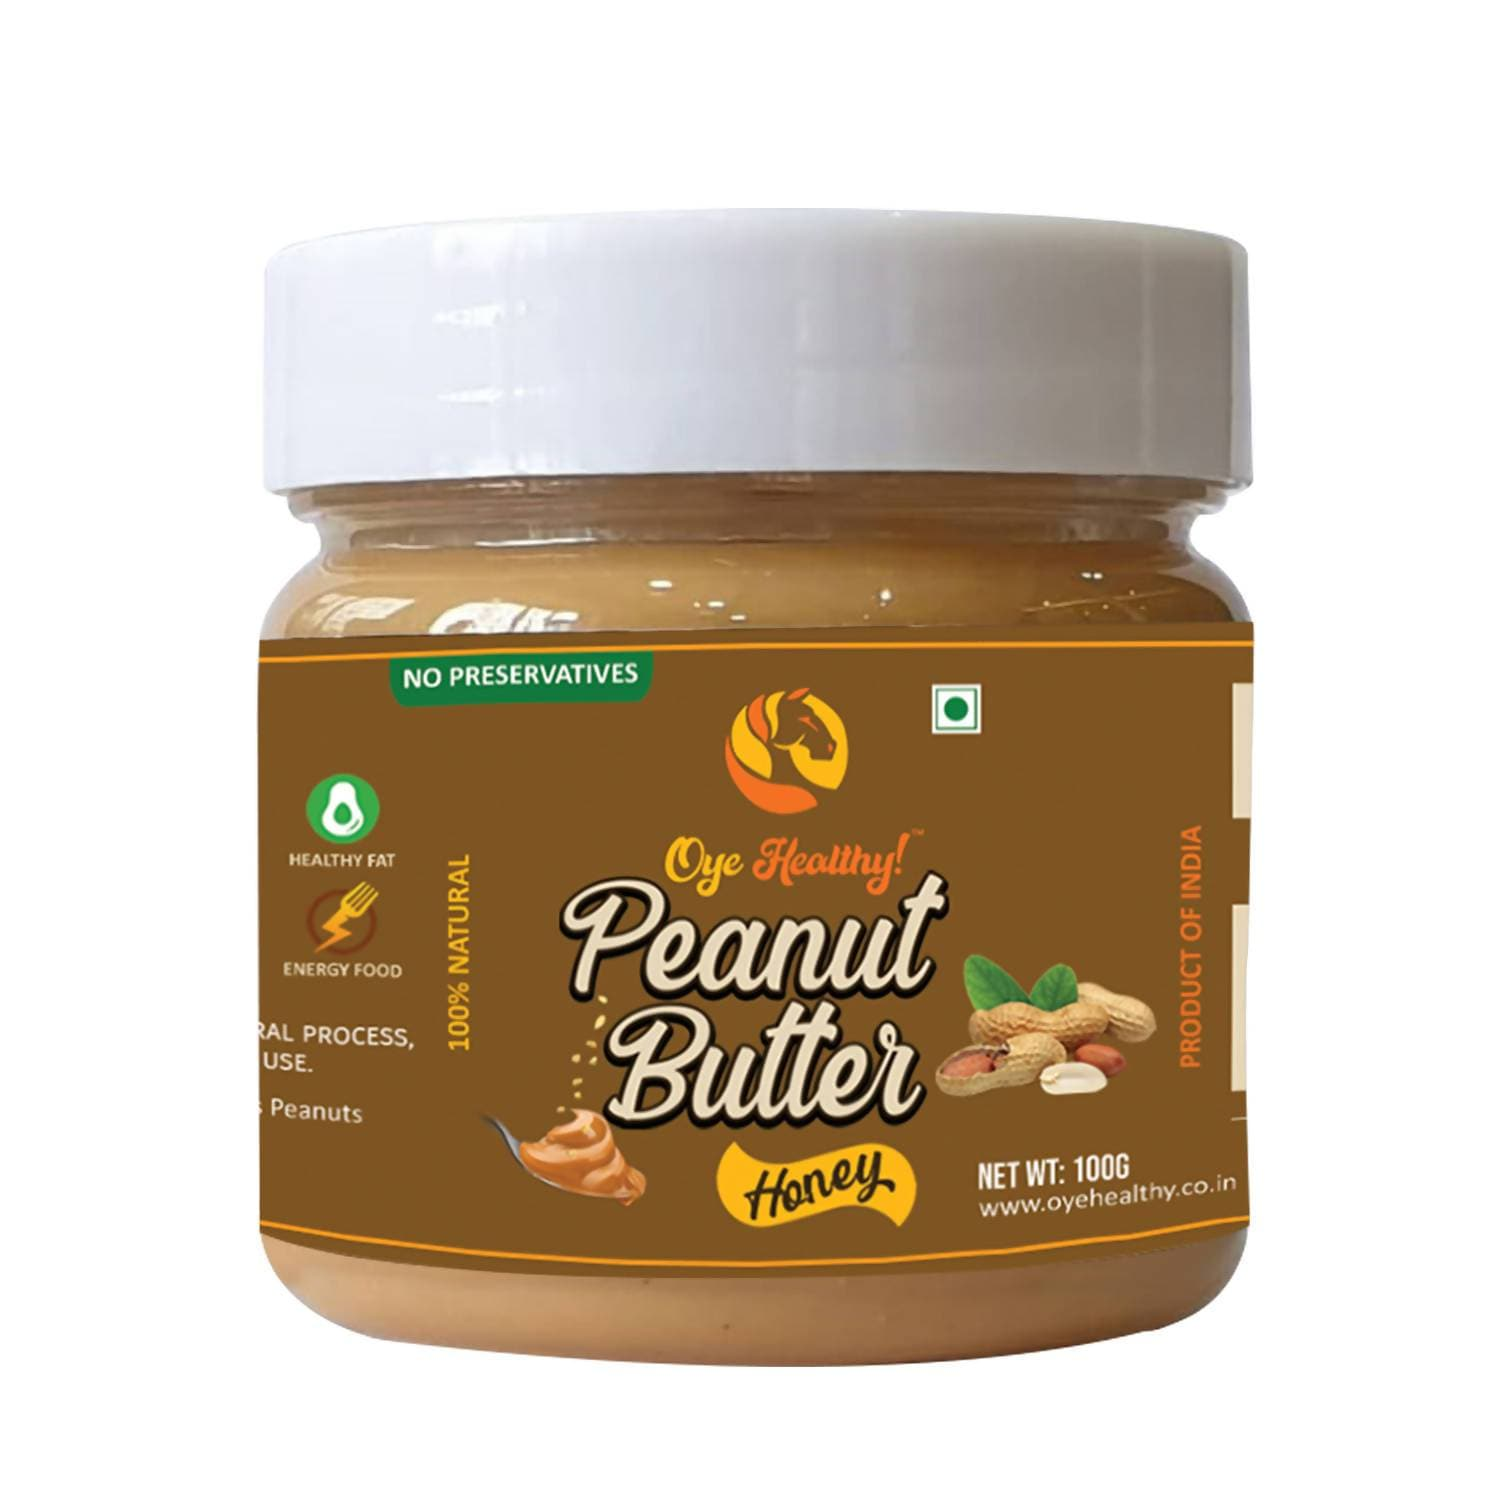 Oye Healthy Peanut Butter Natural Honey